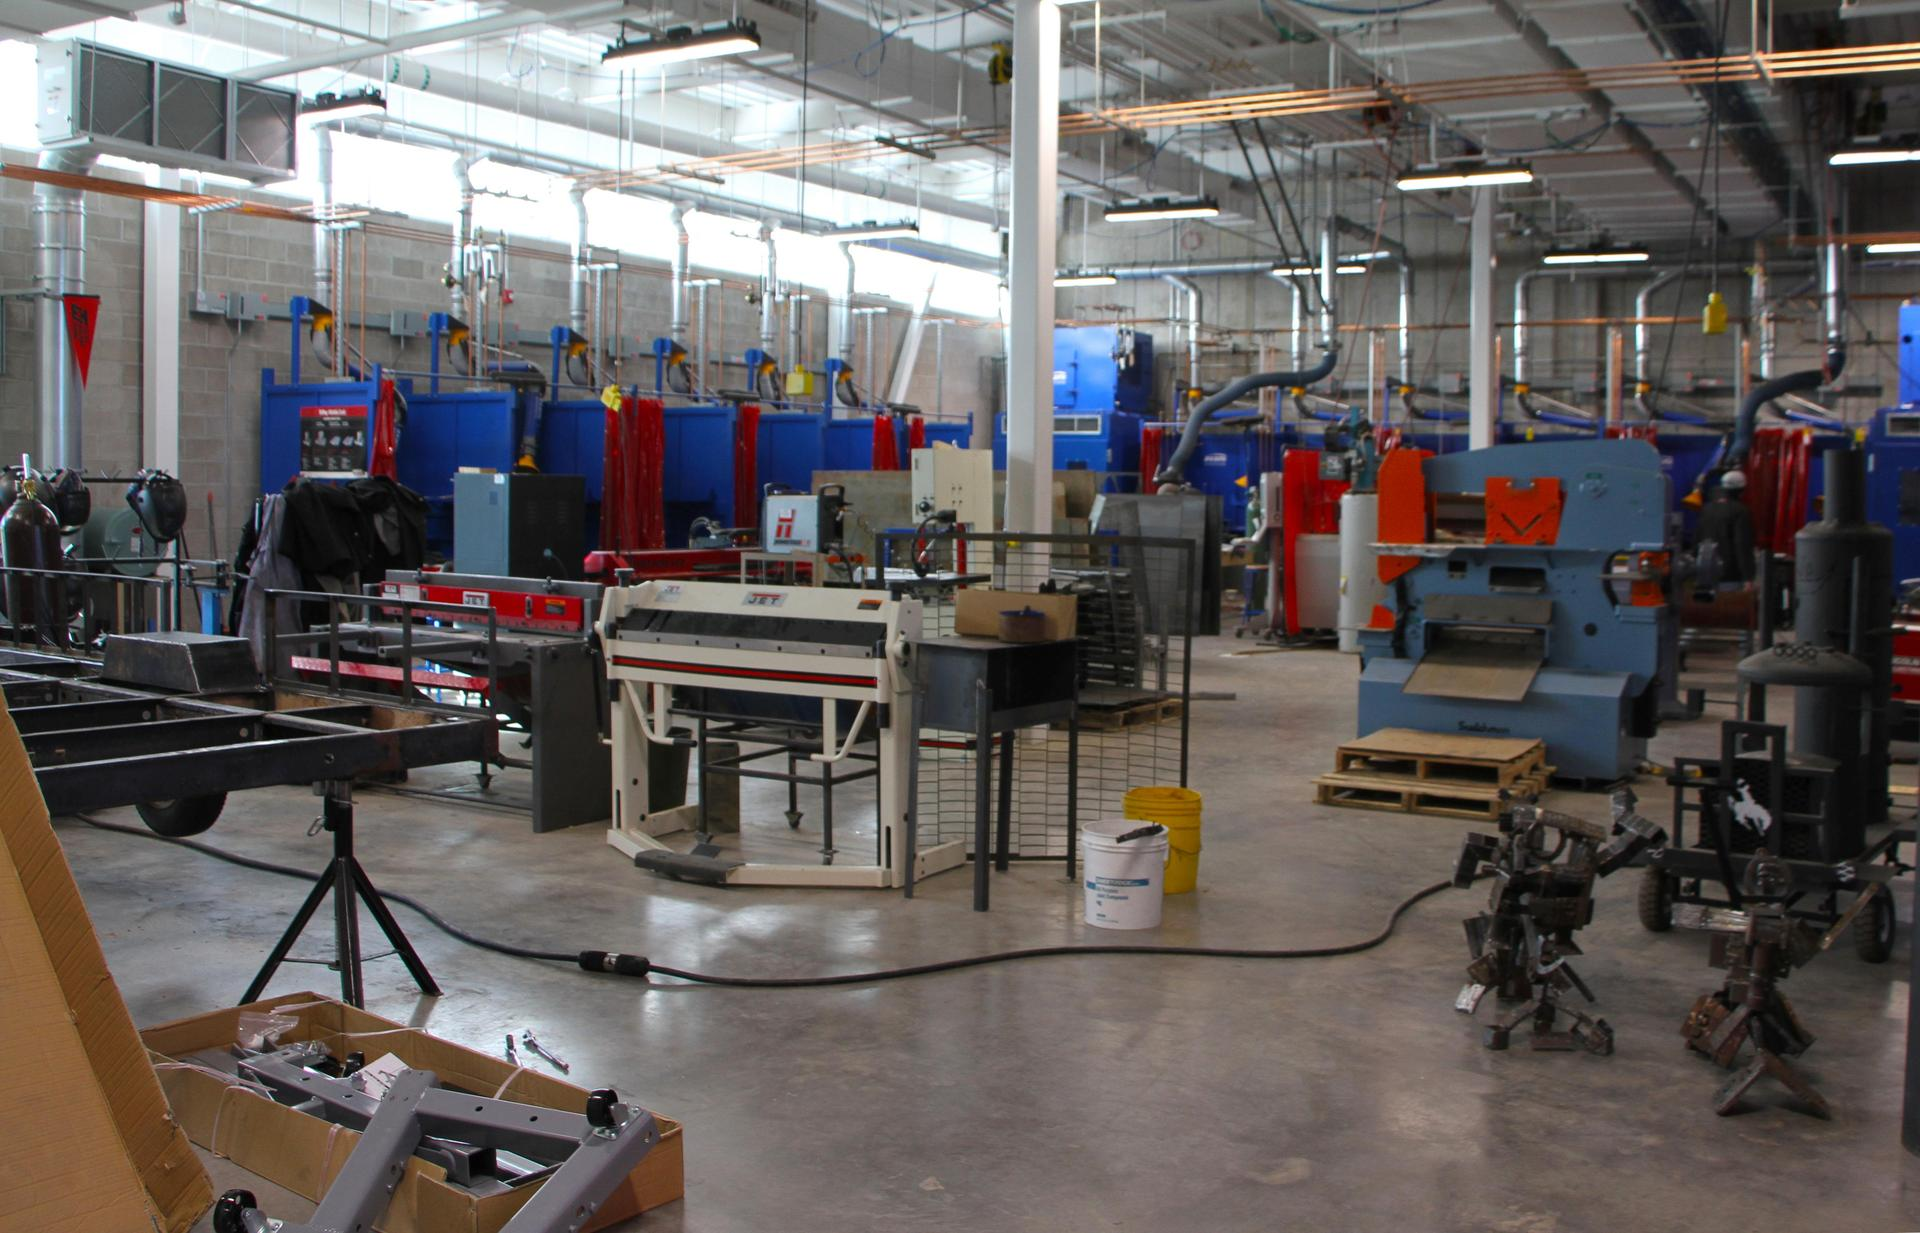 Welding shop at Pathway Innovation Center